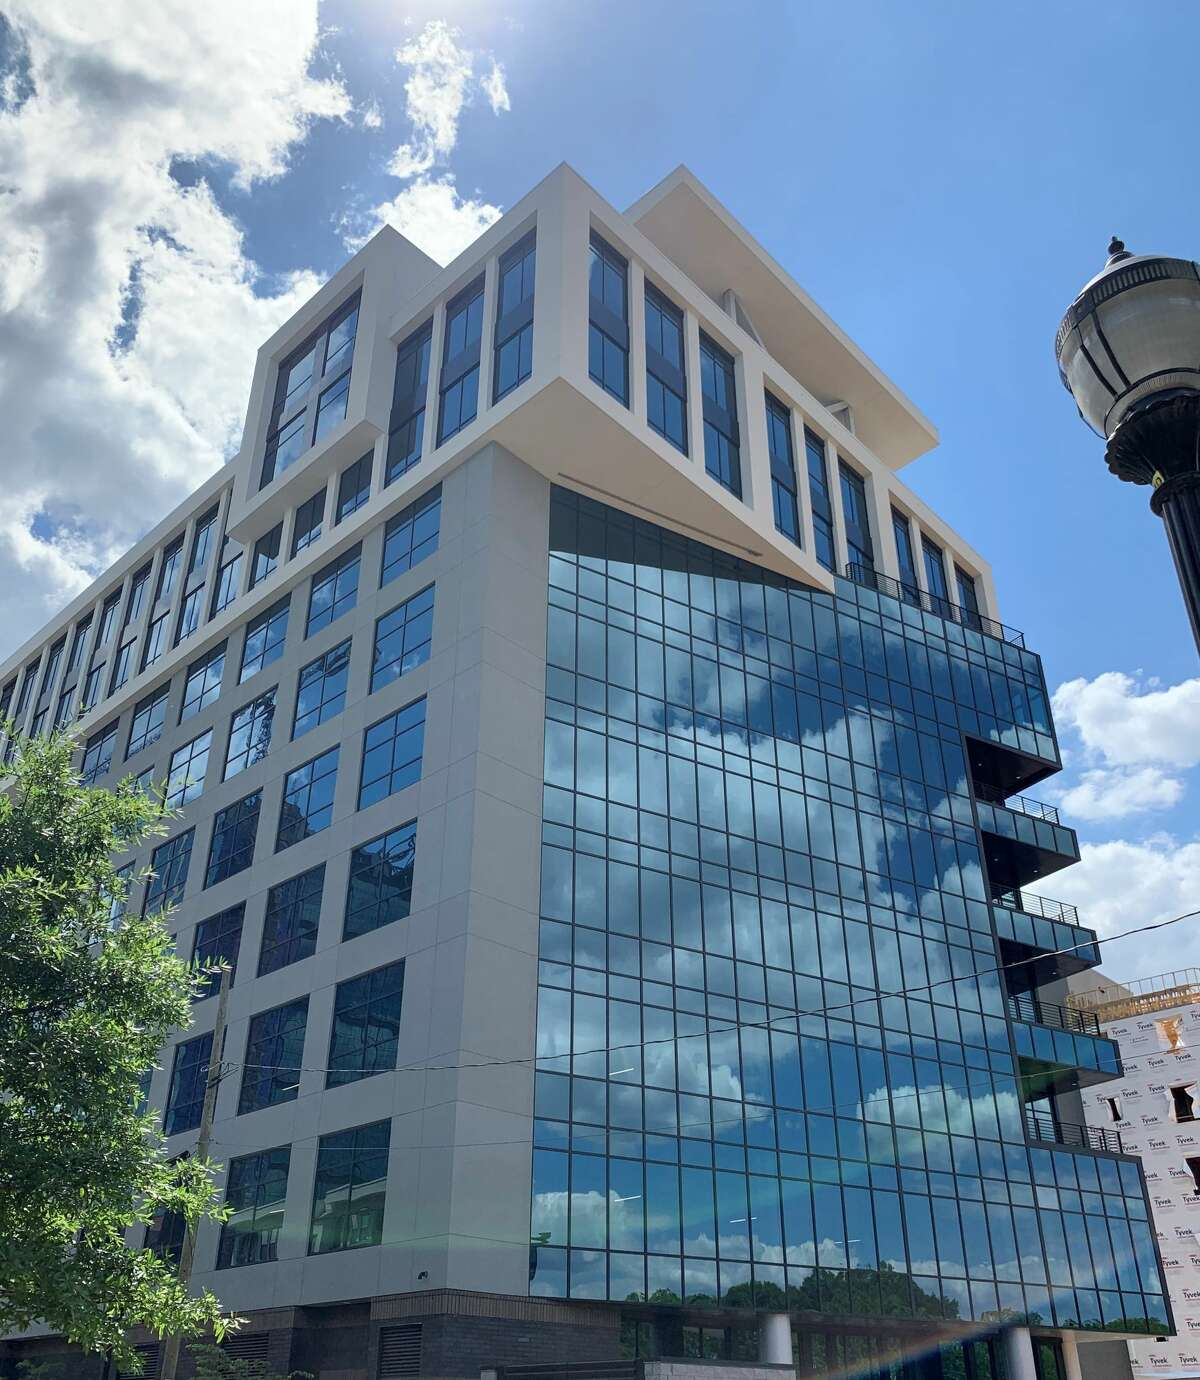 USAA is taking over six floors of this 10-story Charlotte office building.